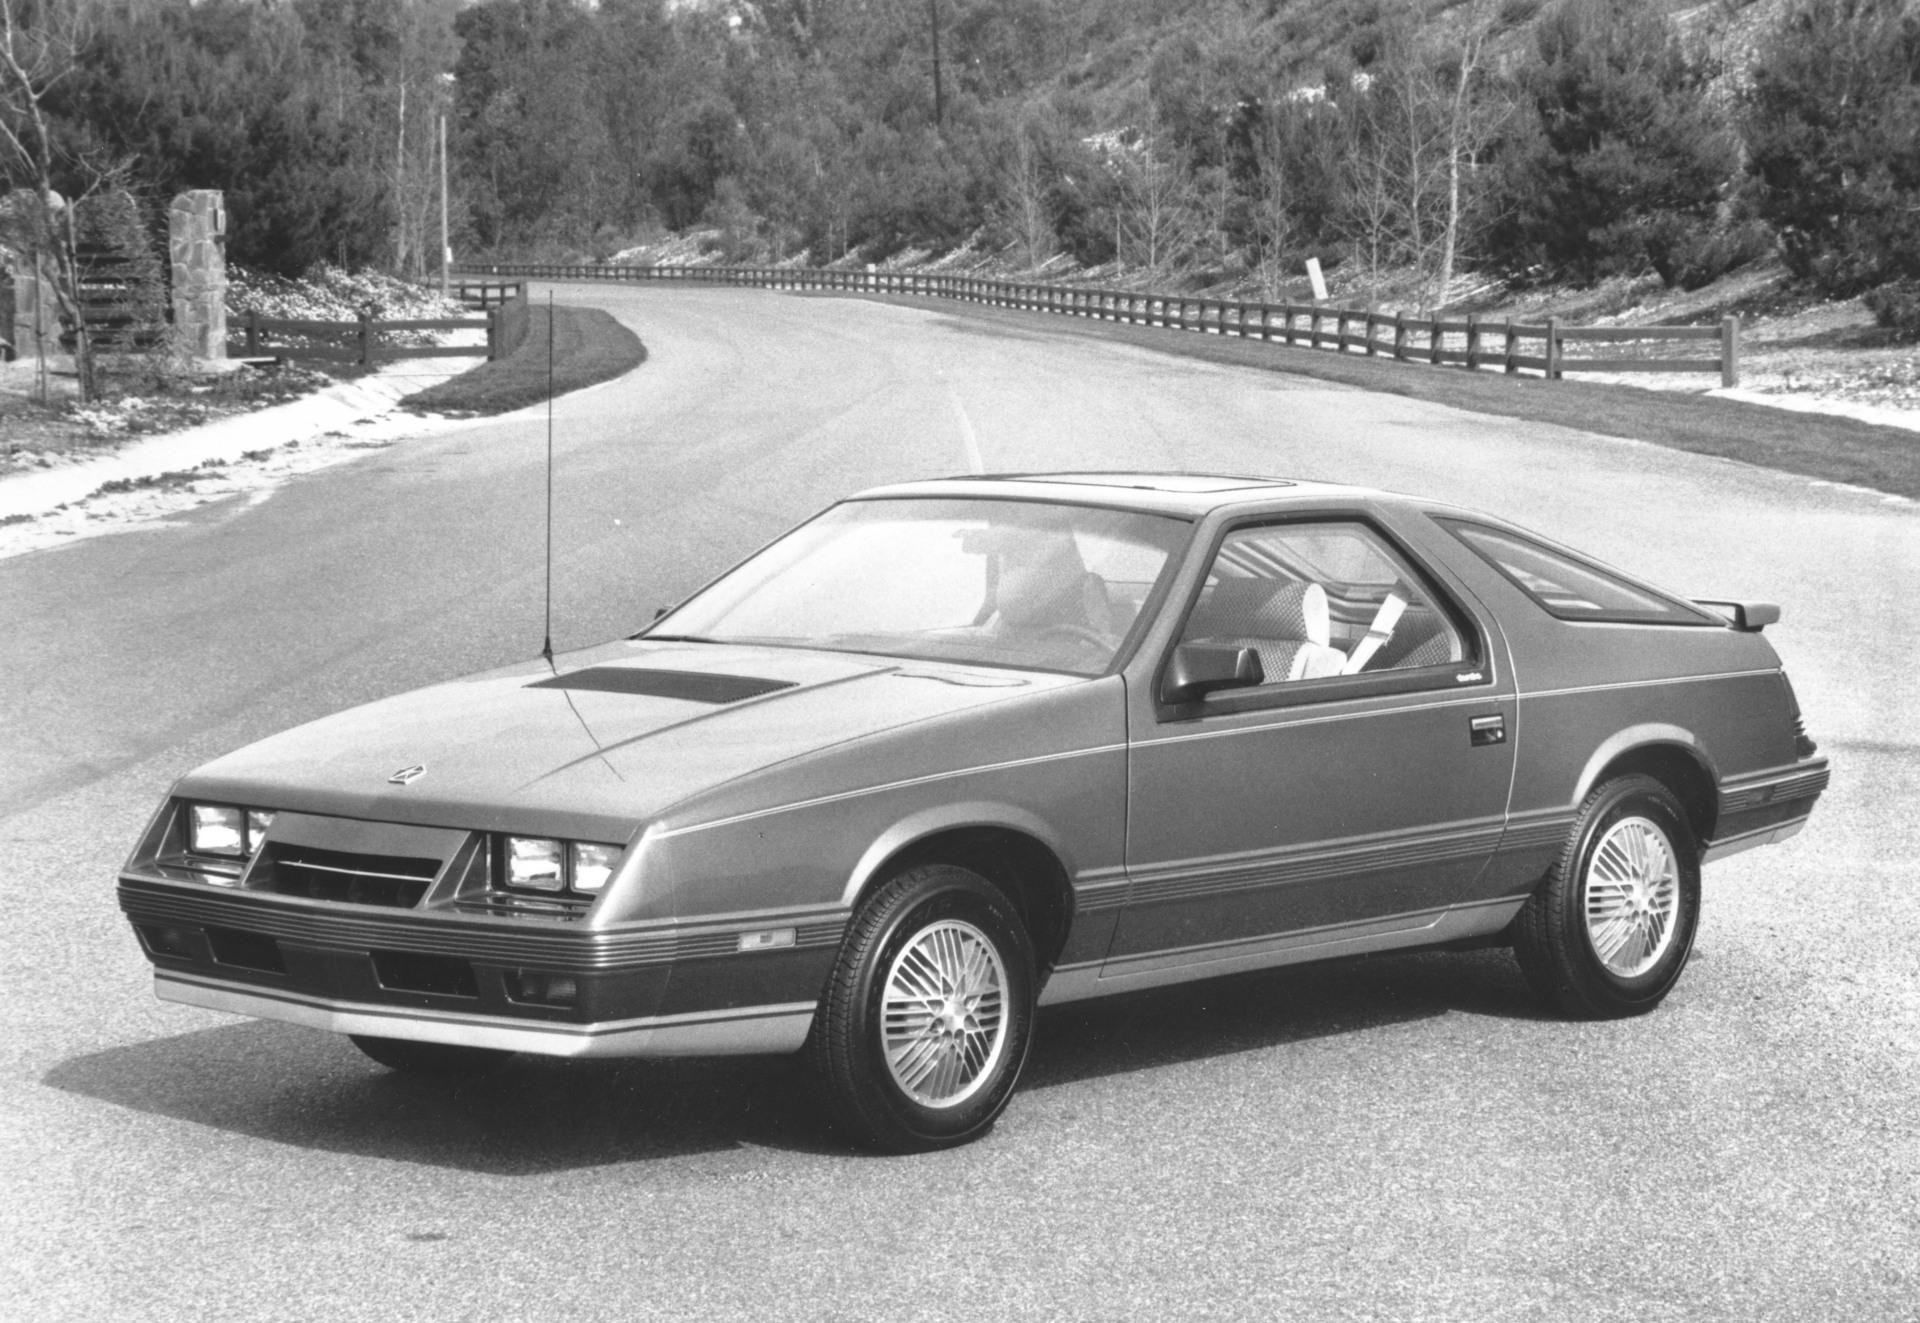 1984 Chrysler Laser Pictures History Value Research